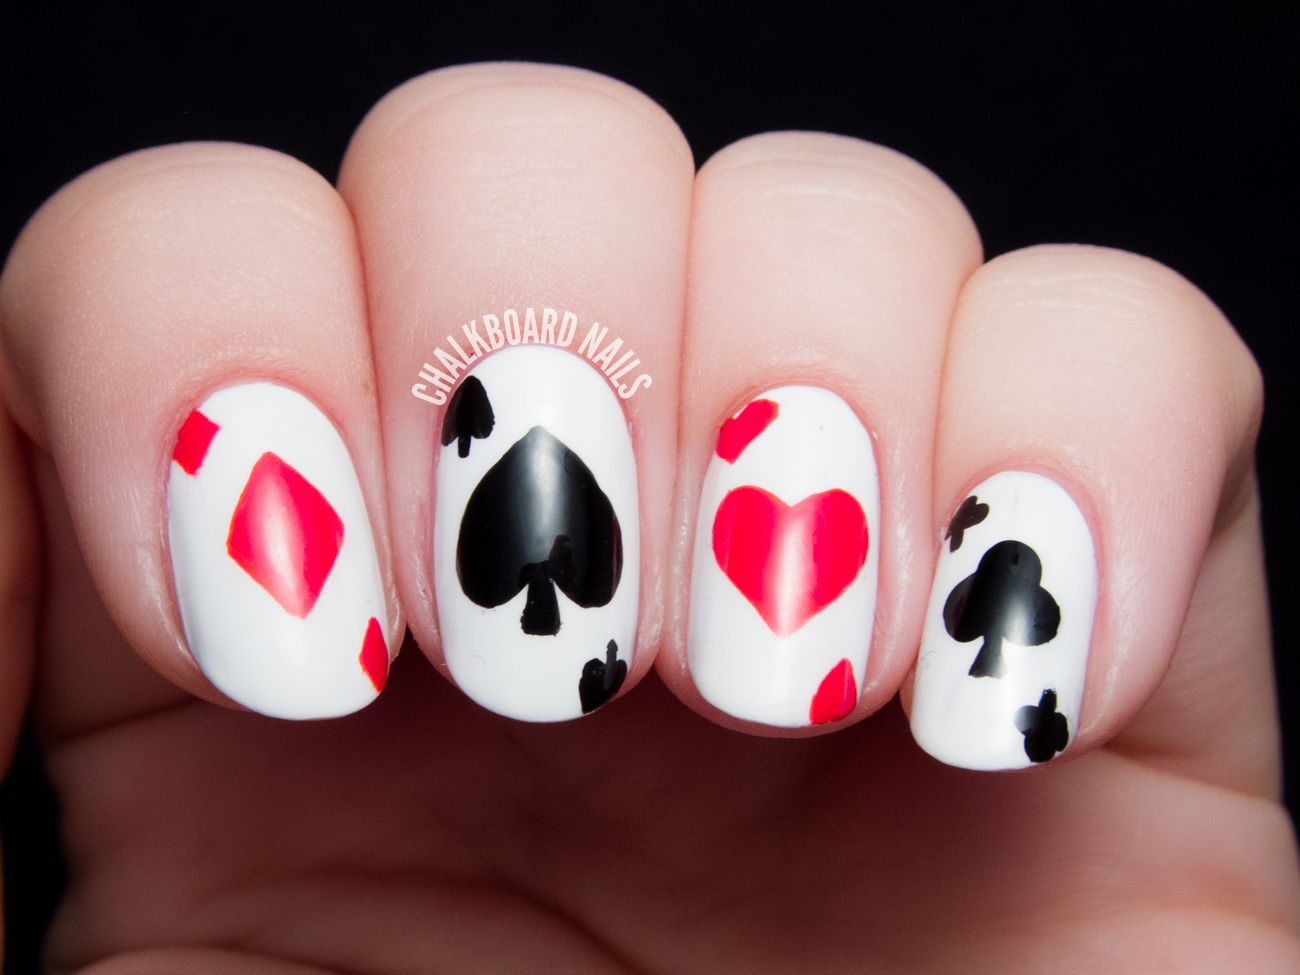 Off With Their Heads! Queen of Hearts Nail Art | Playing cards ...